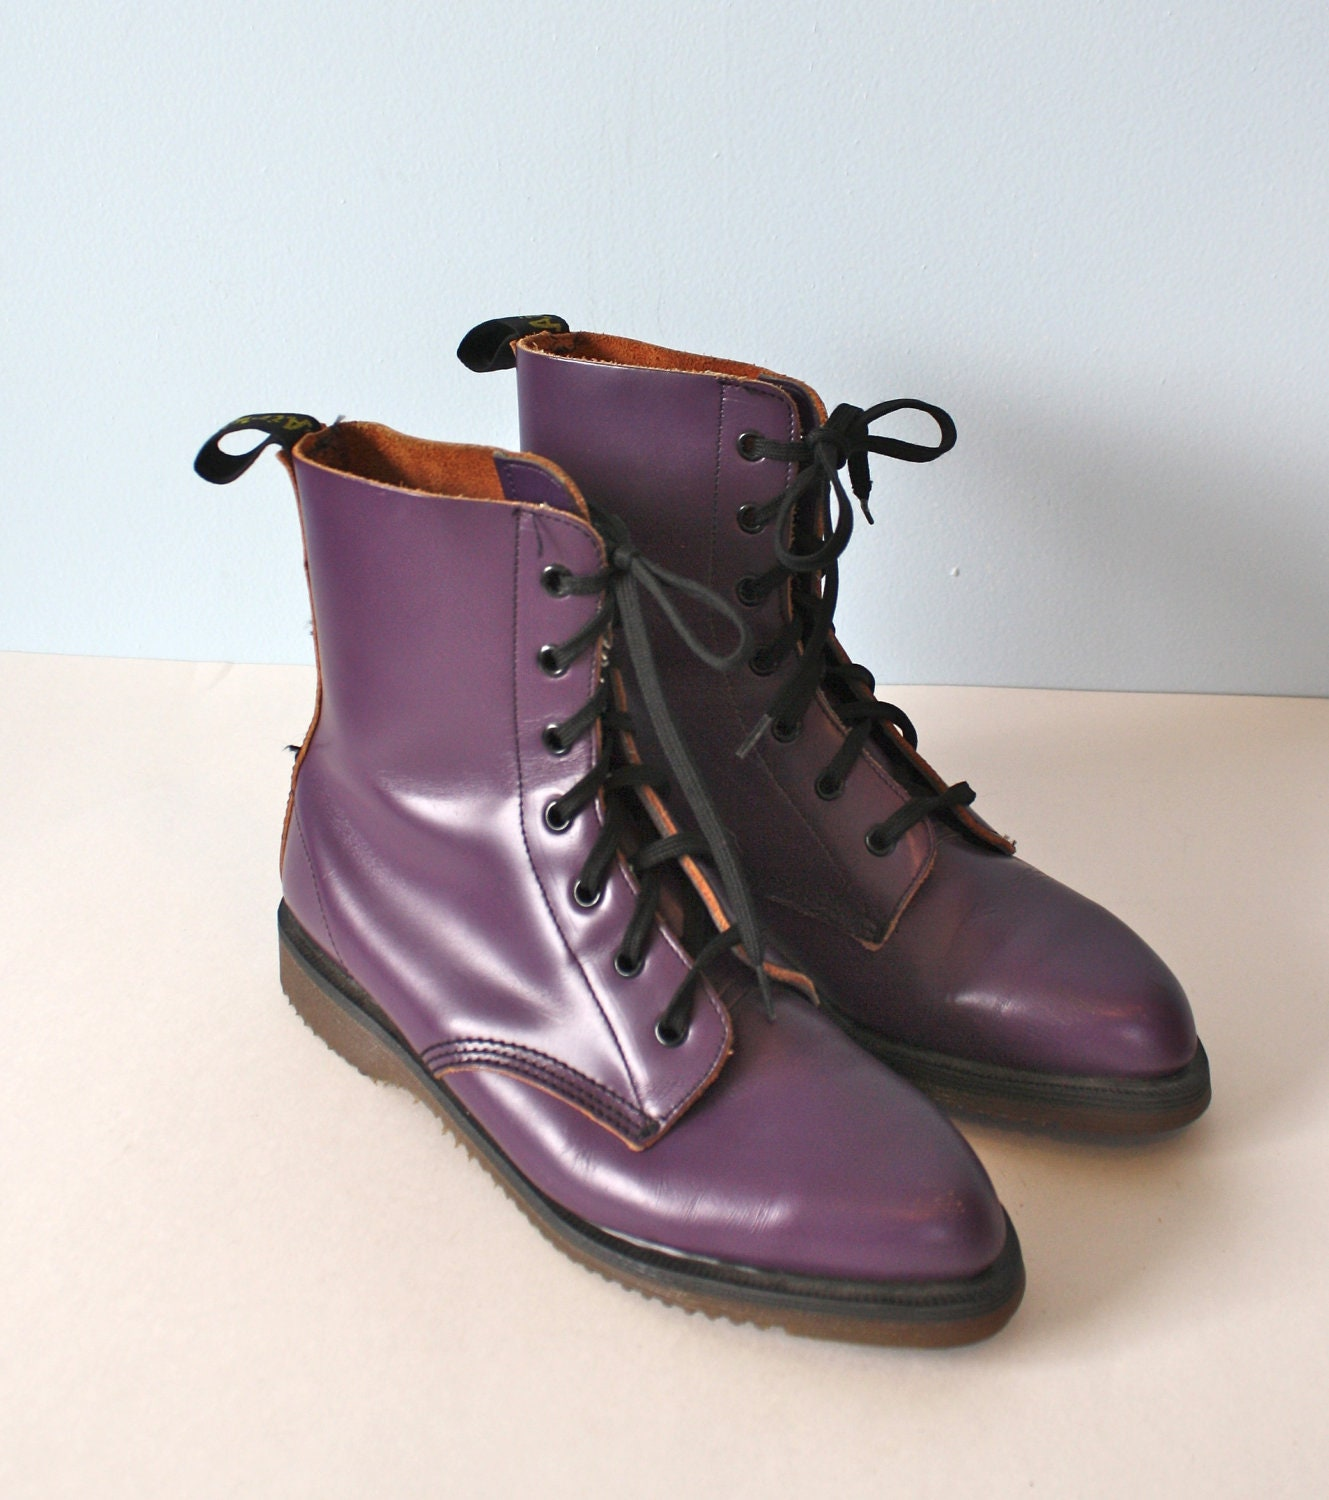 vintage purple doc martens ankle boots made in